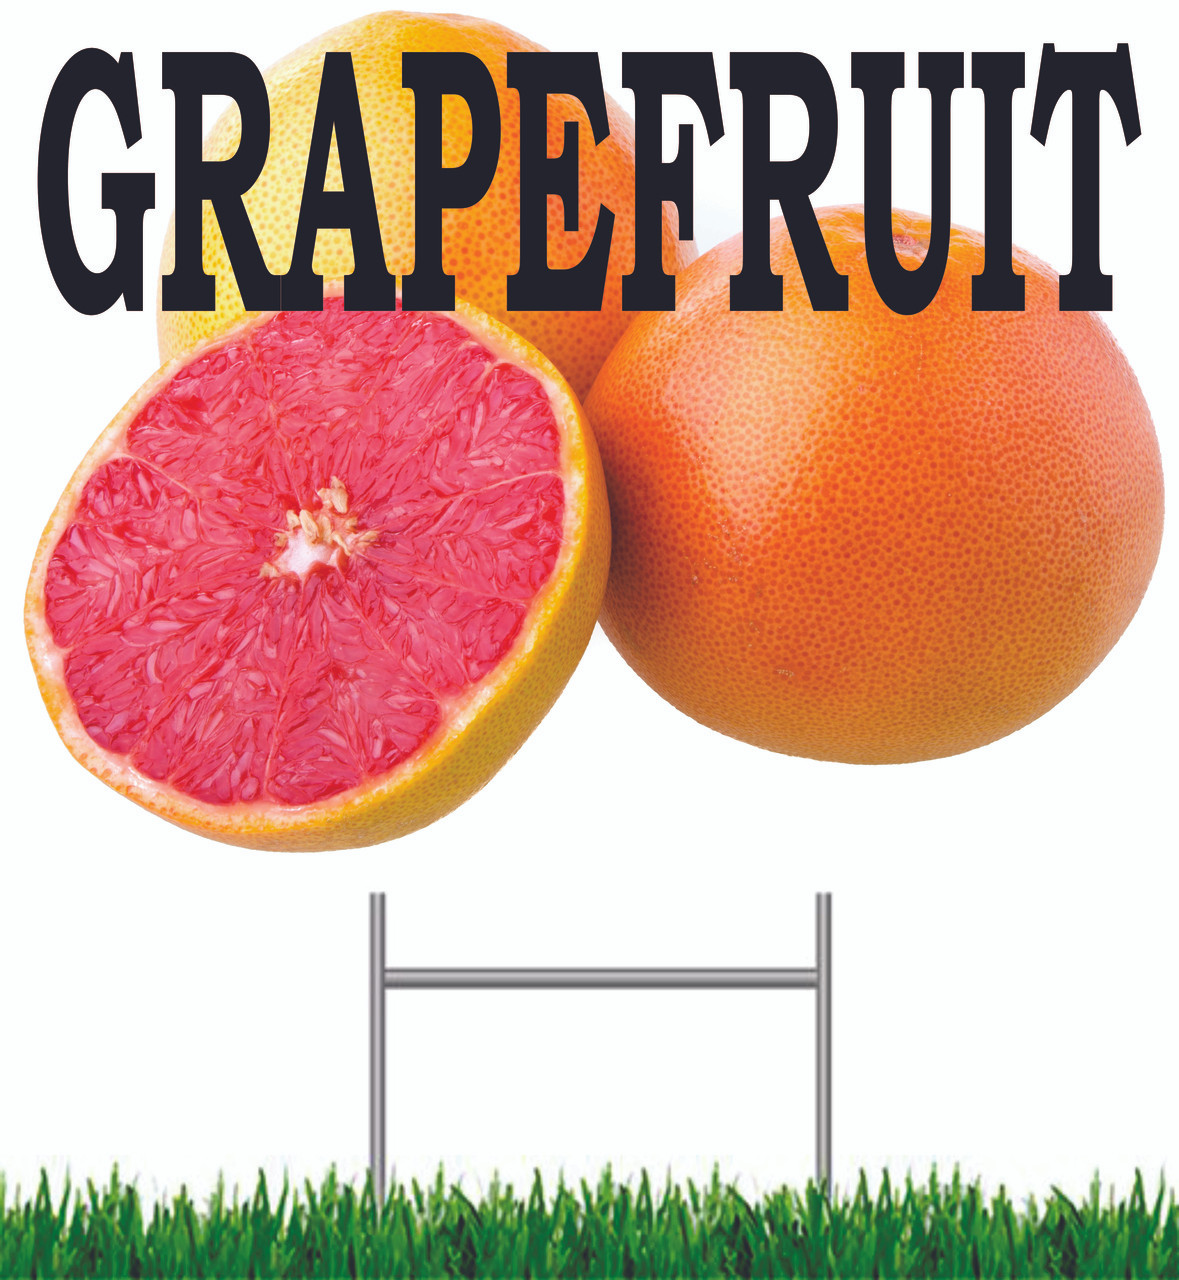 Grapefruit Yard Sign.